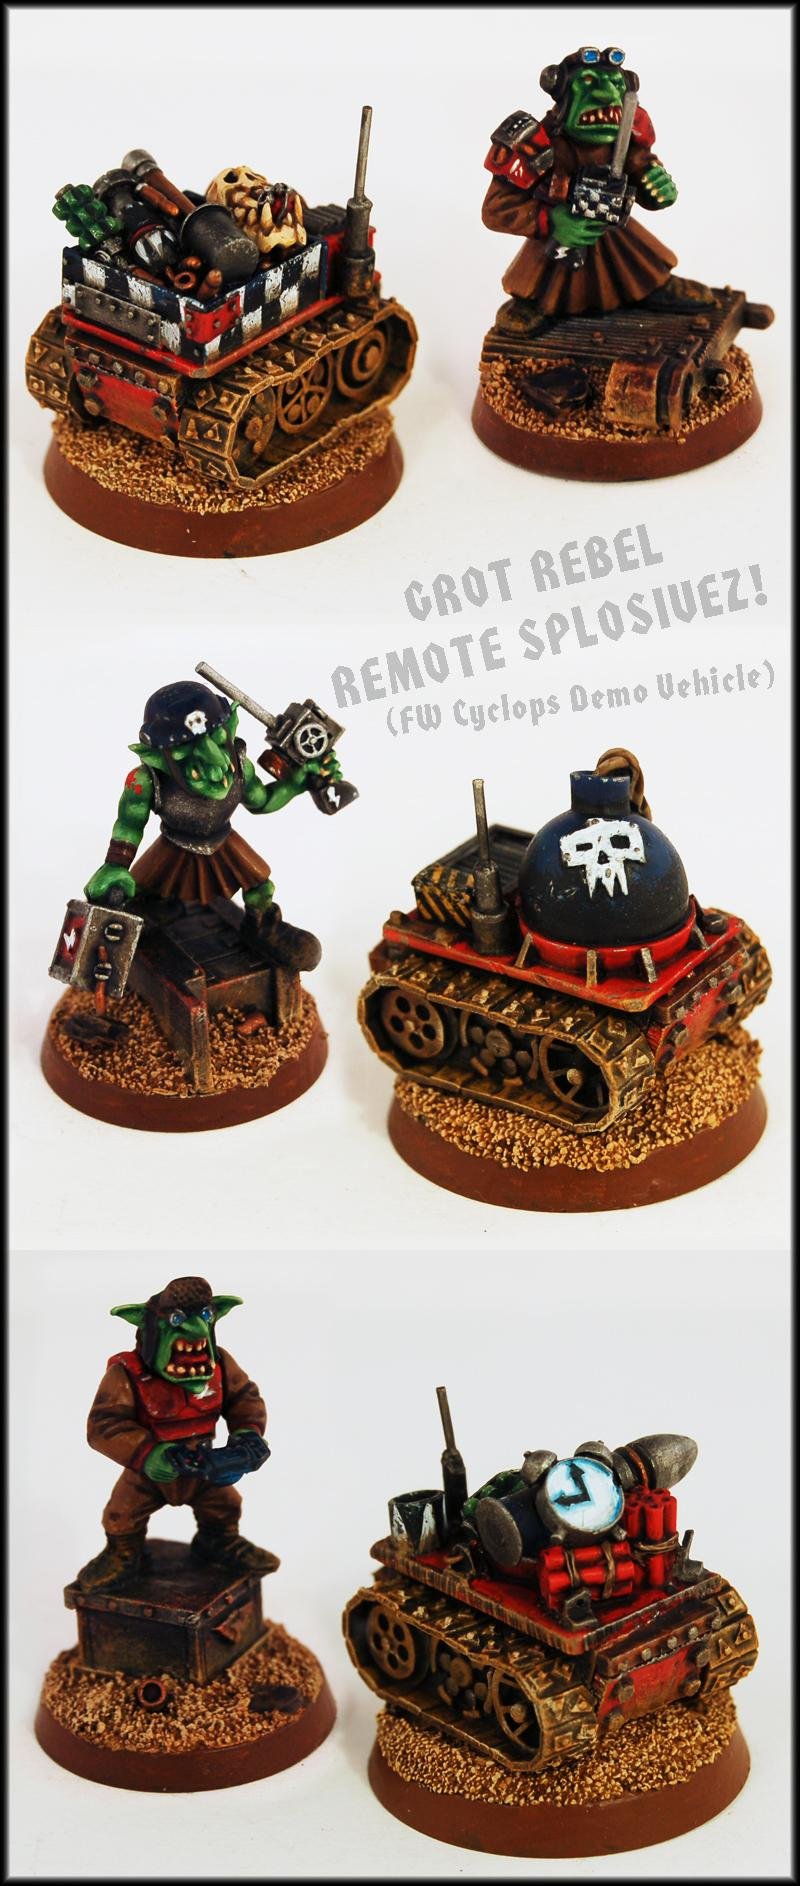 Bomb, Bomb Squig, Cyclops, Demolition Charge, Explosive, Explosives, Forge World, Goblins, Greenskin, Gretchin, Grots, Kromlech, Orcs, Orks